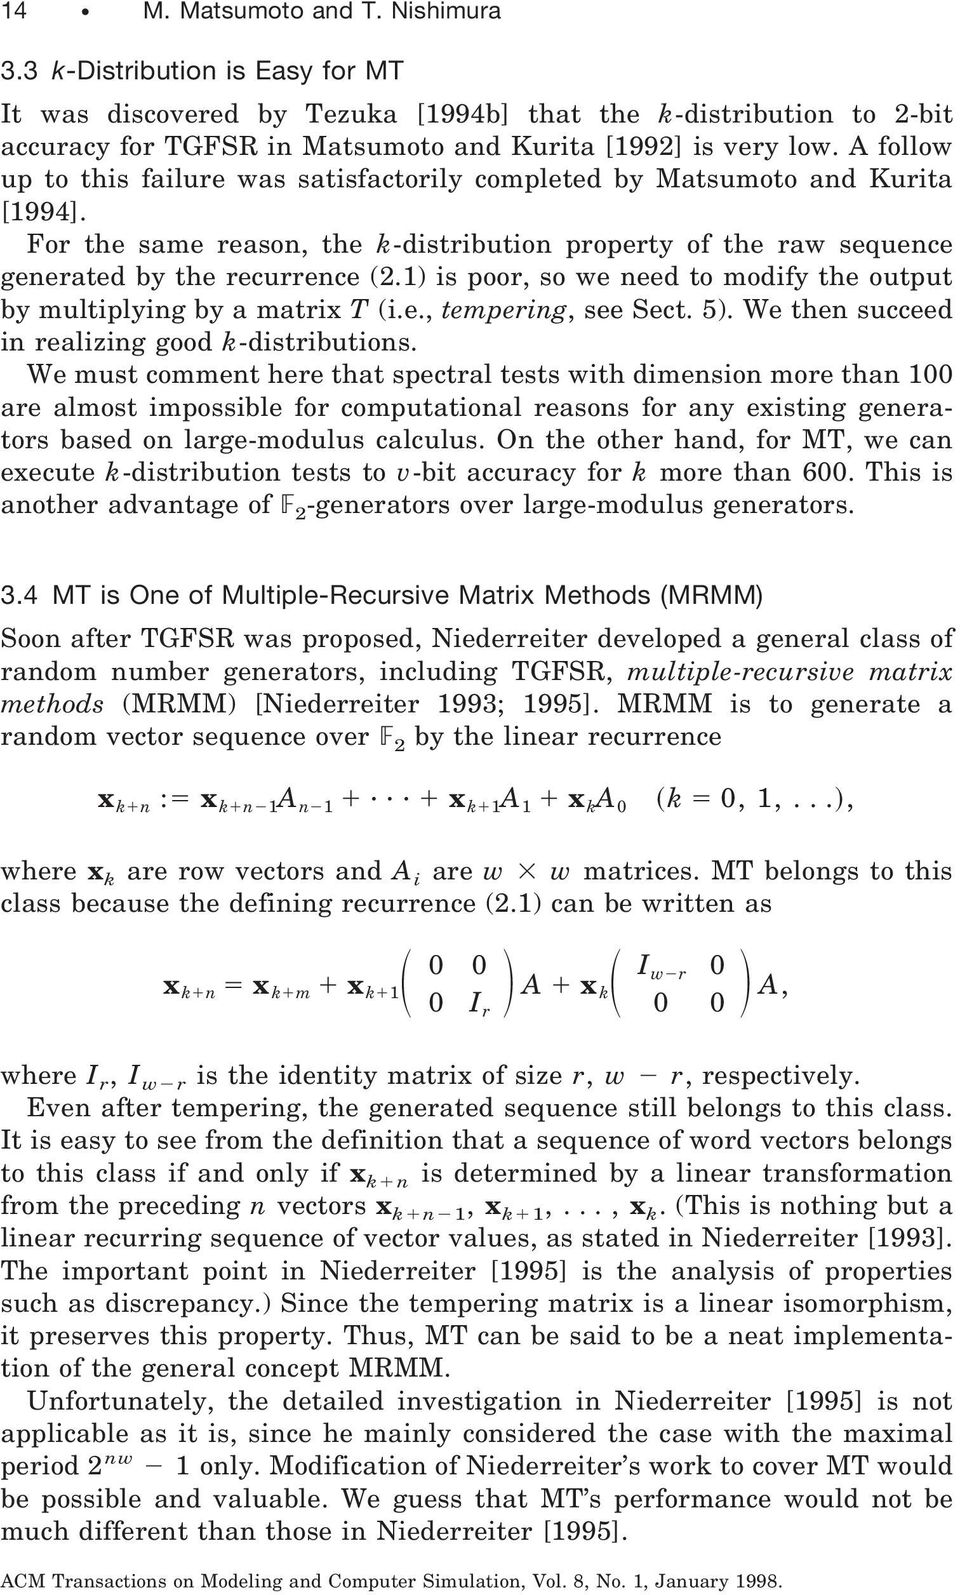 1) is poor, so we need to modify the output by multiplying by a matrix T (i.e., tempering, see Sect. 5). We then succeed in realizing good k-distributions.